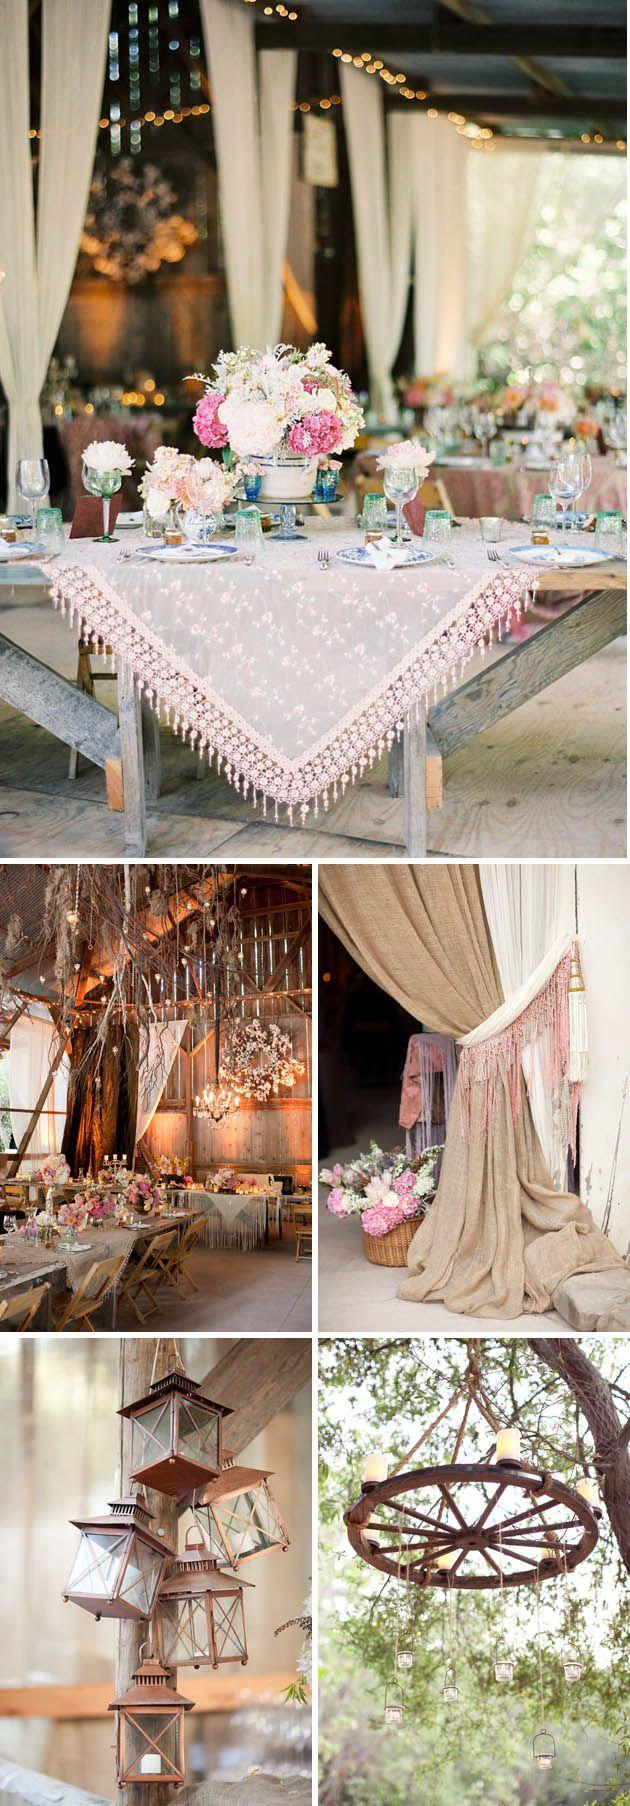 Mariage - Whimsical, Rustic And Natural: 5 Bohemian Venues Worthy Of Your Consideration